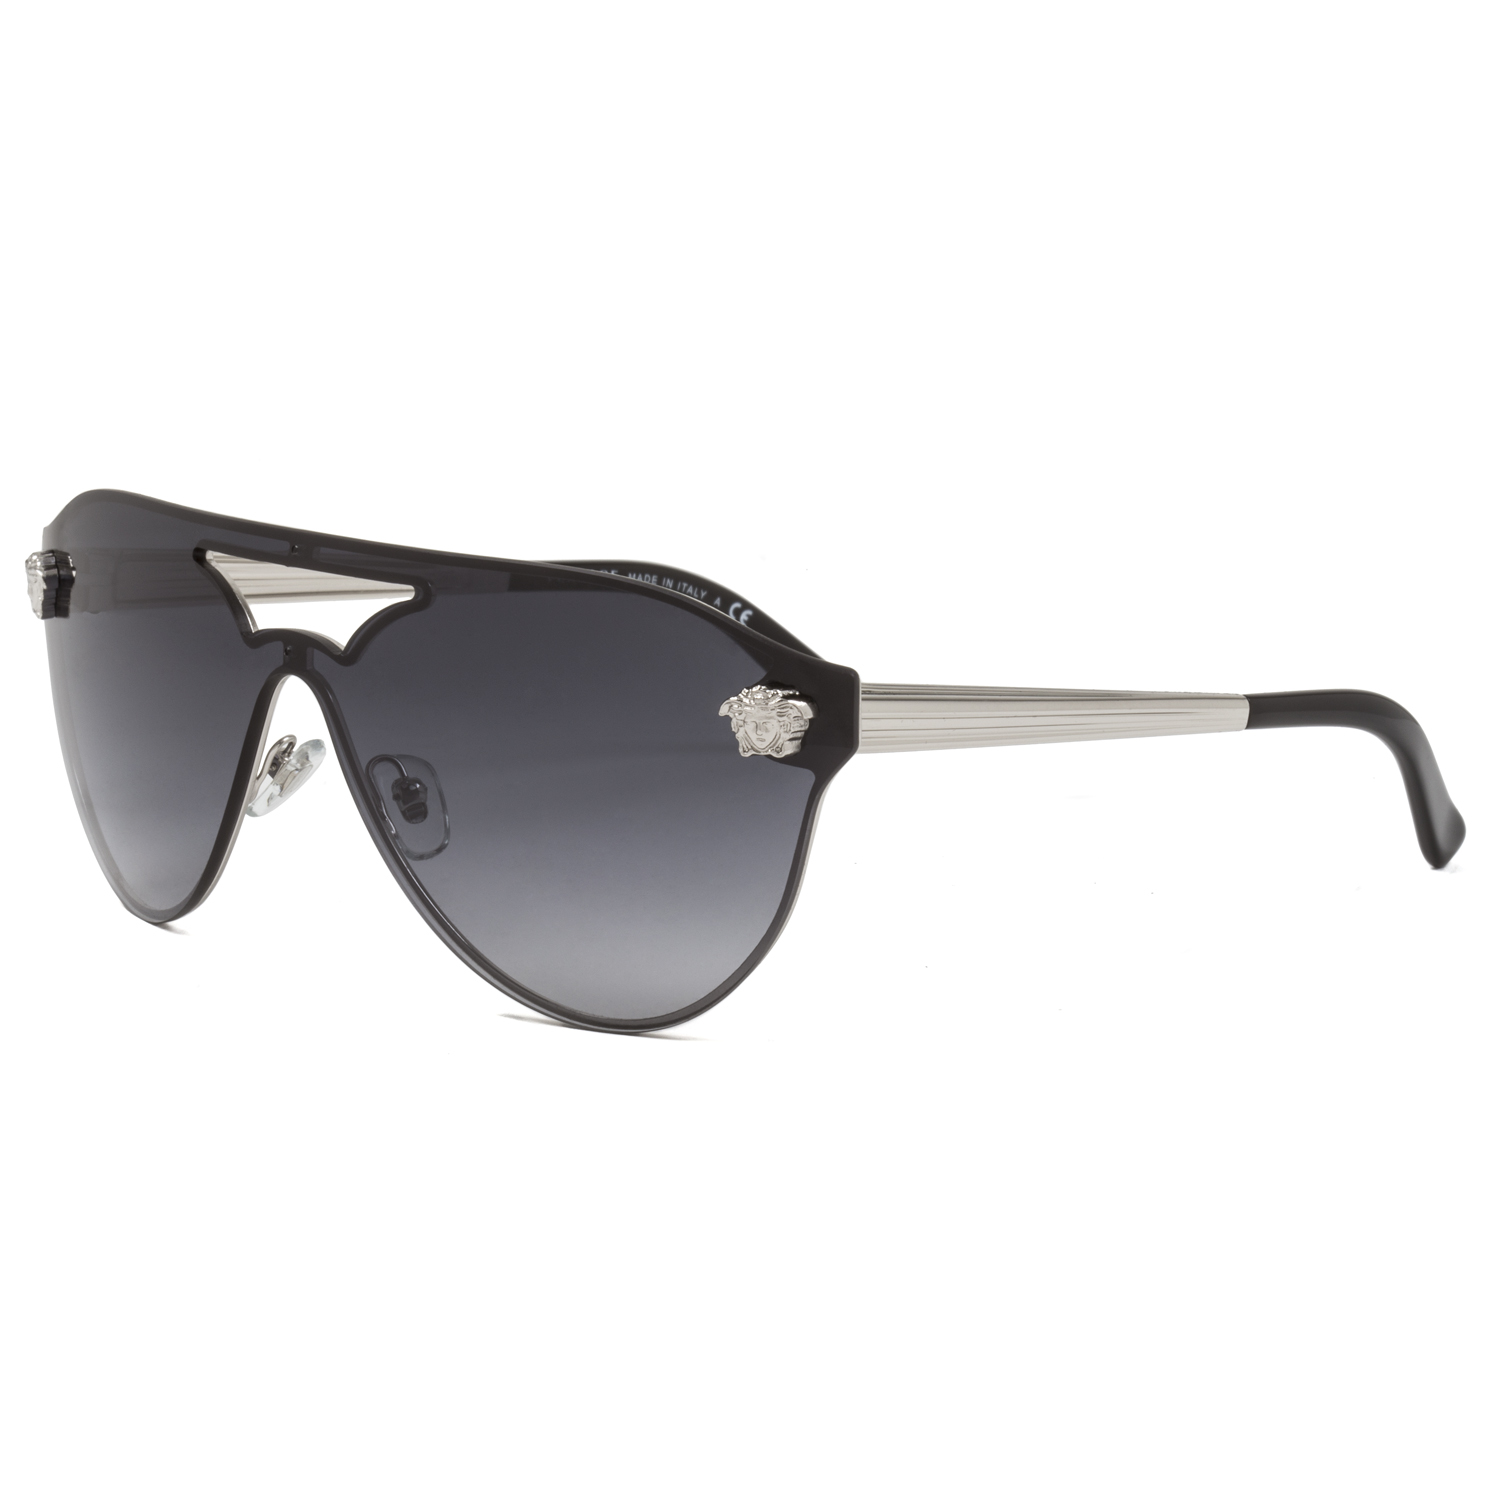 Frame glasses versace - Click Thumbnails To Enlarge